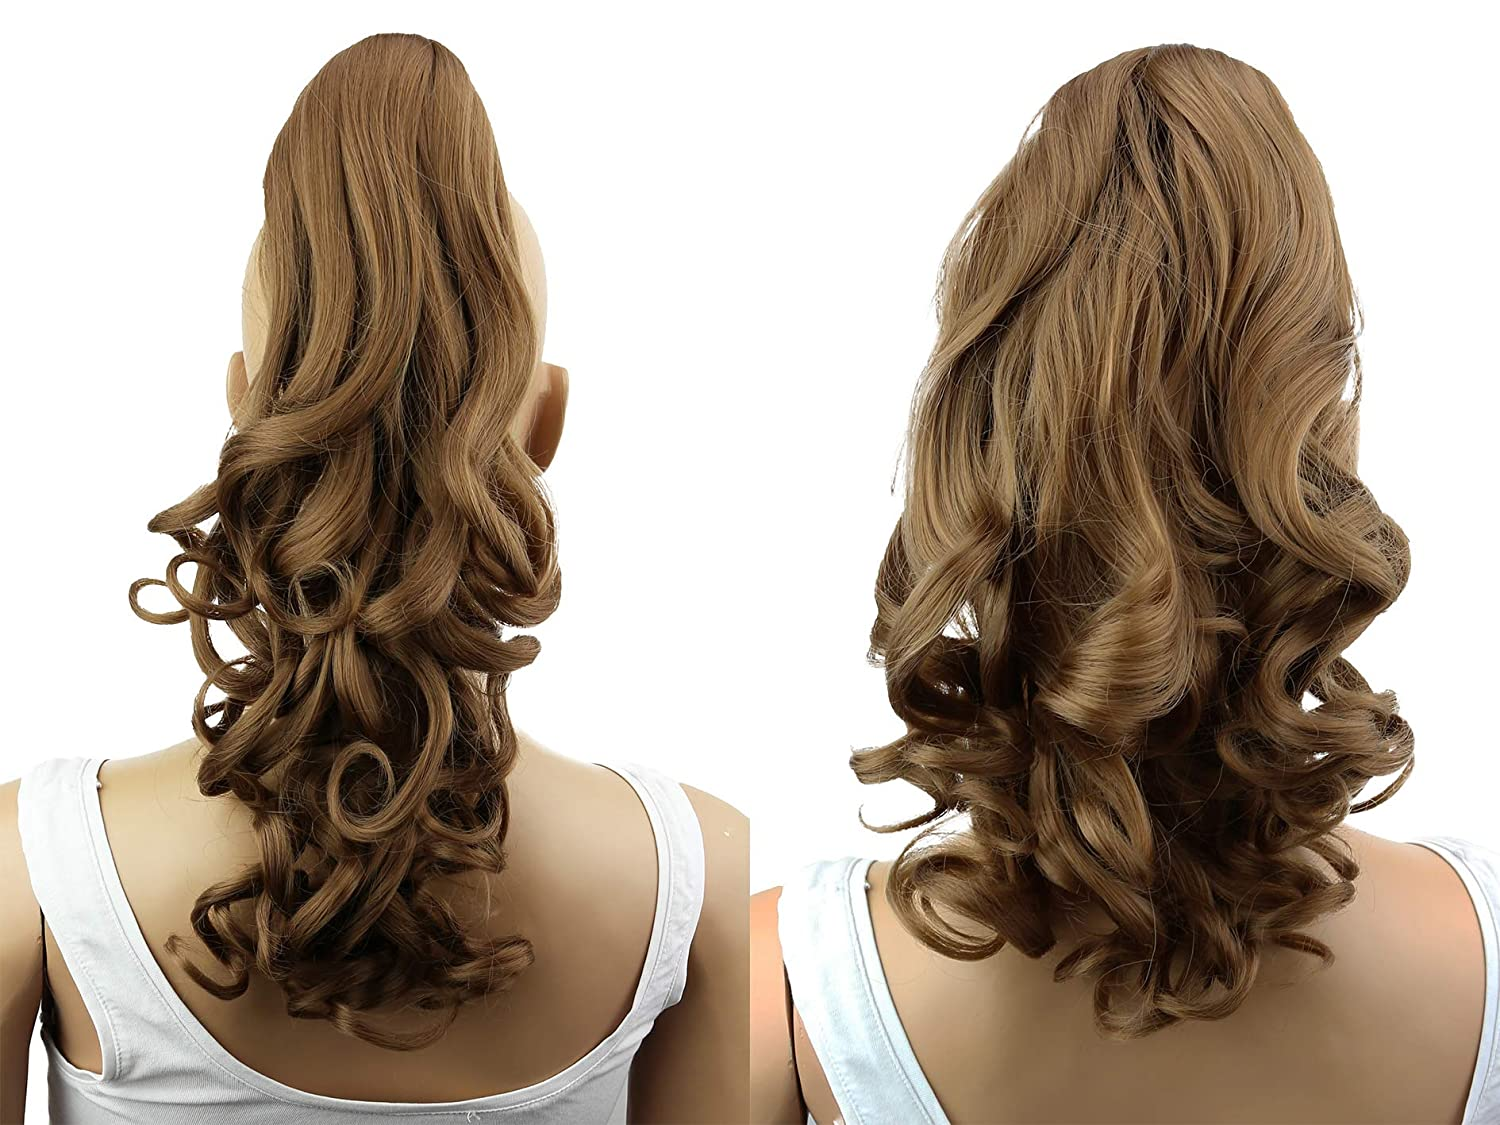 PRETTYSHOP 20 & 120g Hair Piece Pony Tail Extension 2 IN 1 Curled Wavy Heat-Resisting Diverse Colors (dark blonde 27 H9-2)